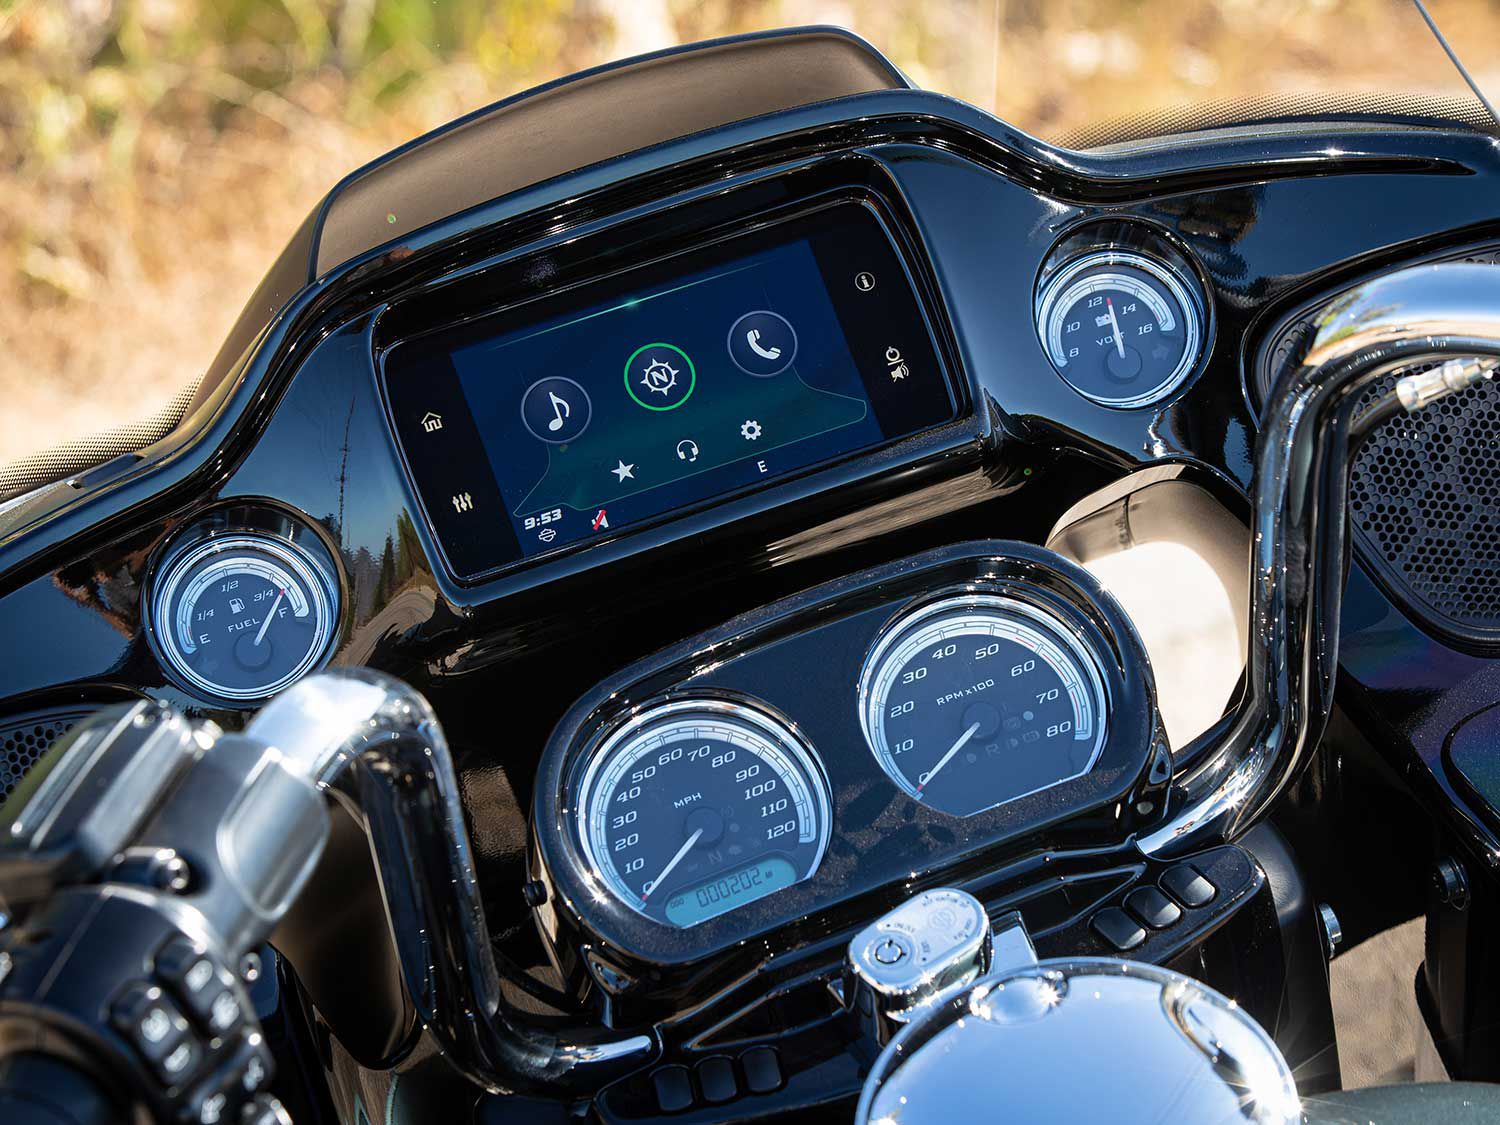 Even with the additions of Gorilla Glass and Apple CarPlay last year, H-D's infotainment system feels dated compared to other manufacturers.